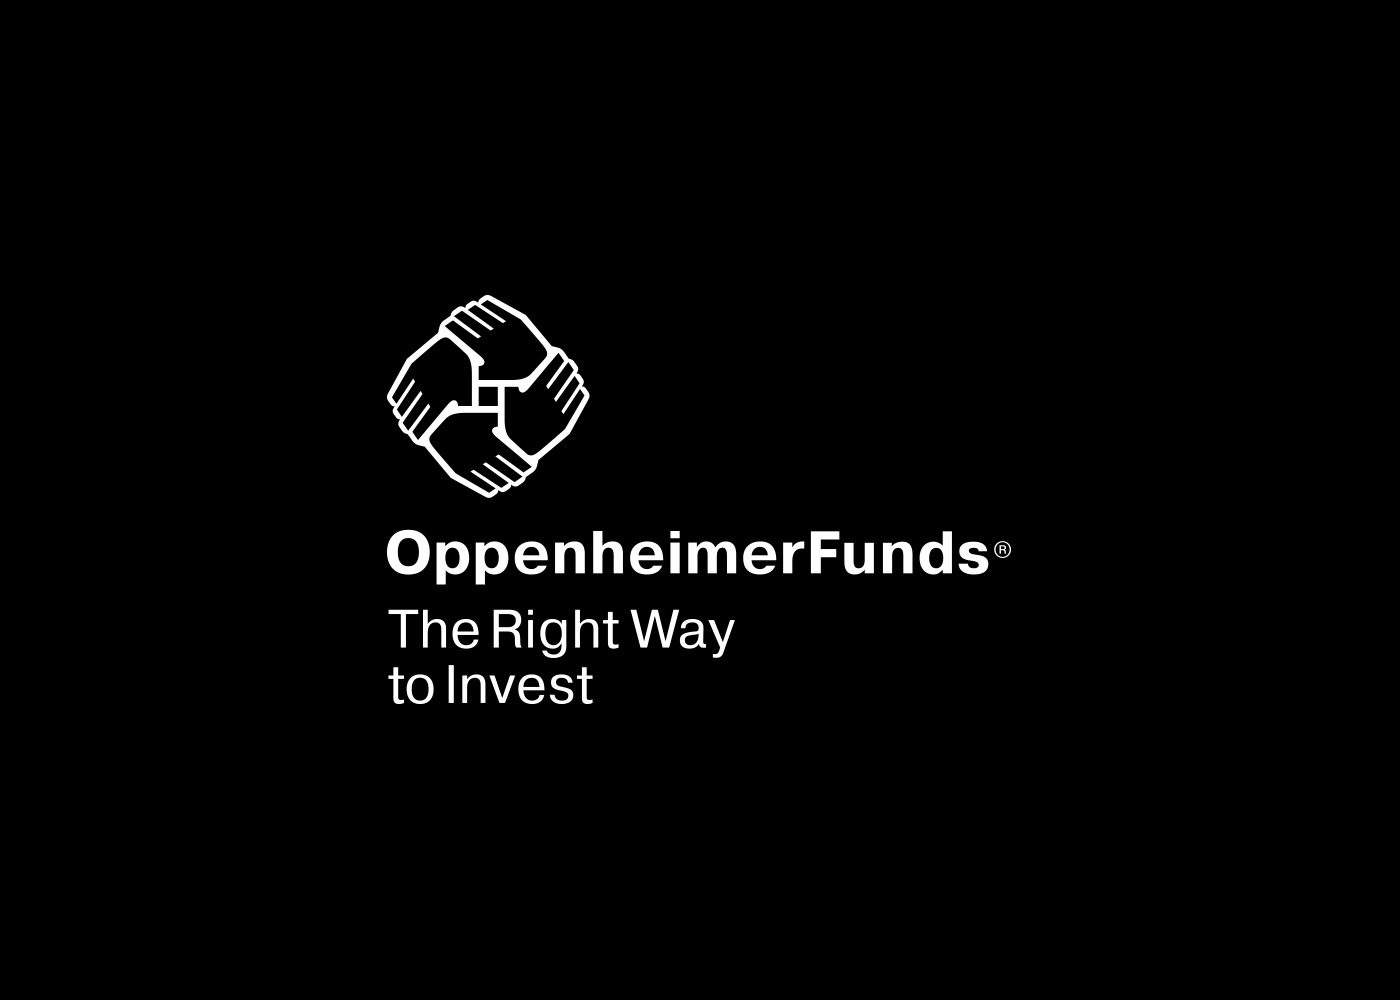 Oppenheimerfunds single k